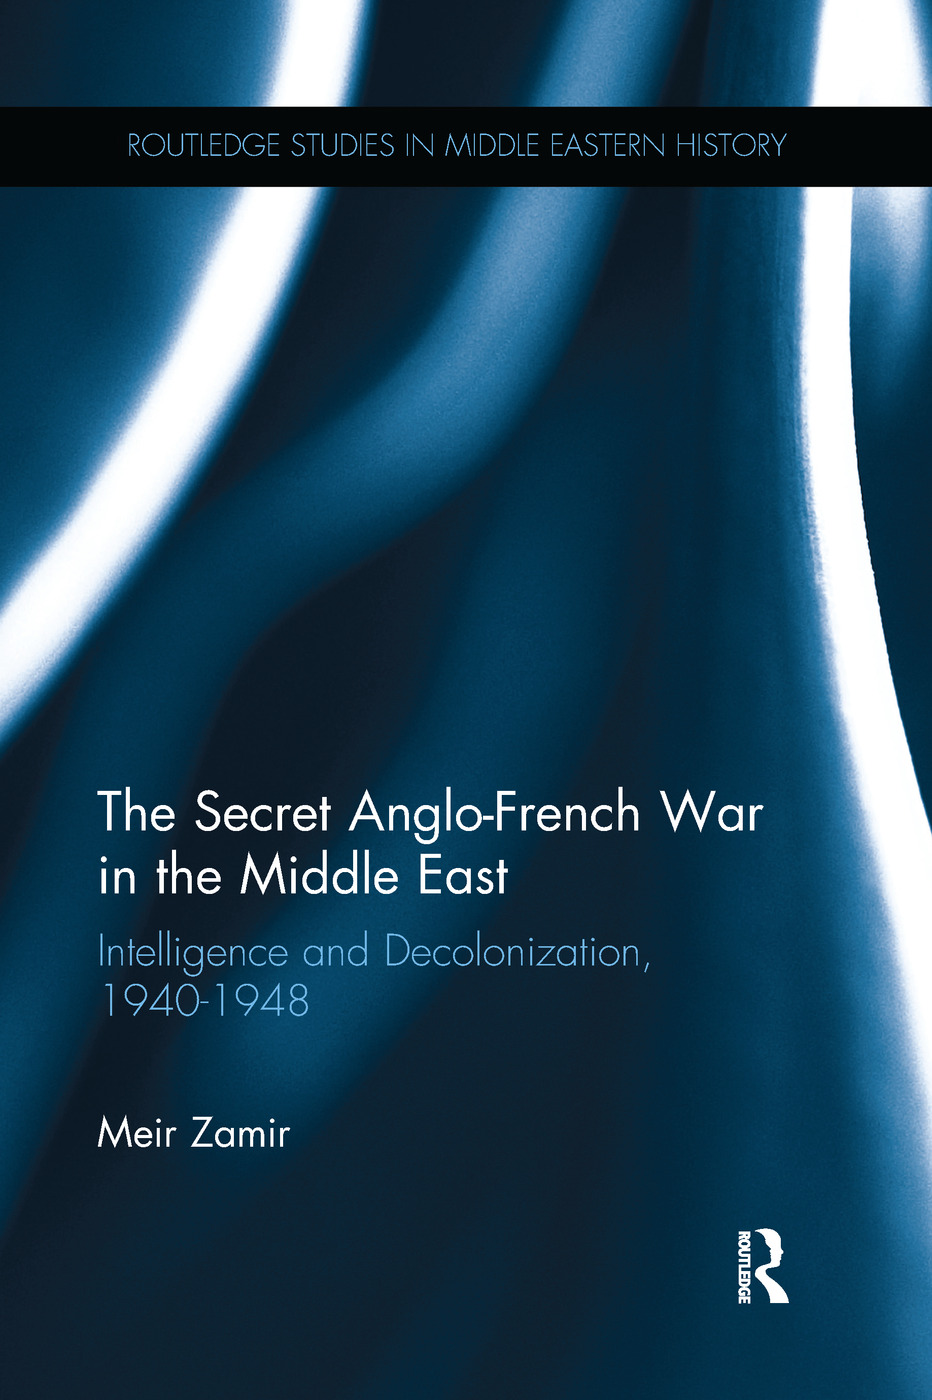 The Secret Anglo-French War in the Middle East: Intelligence and Decolonization, 1940-1948 book cover